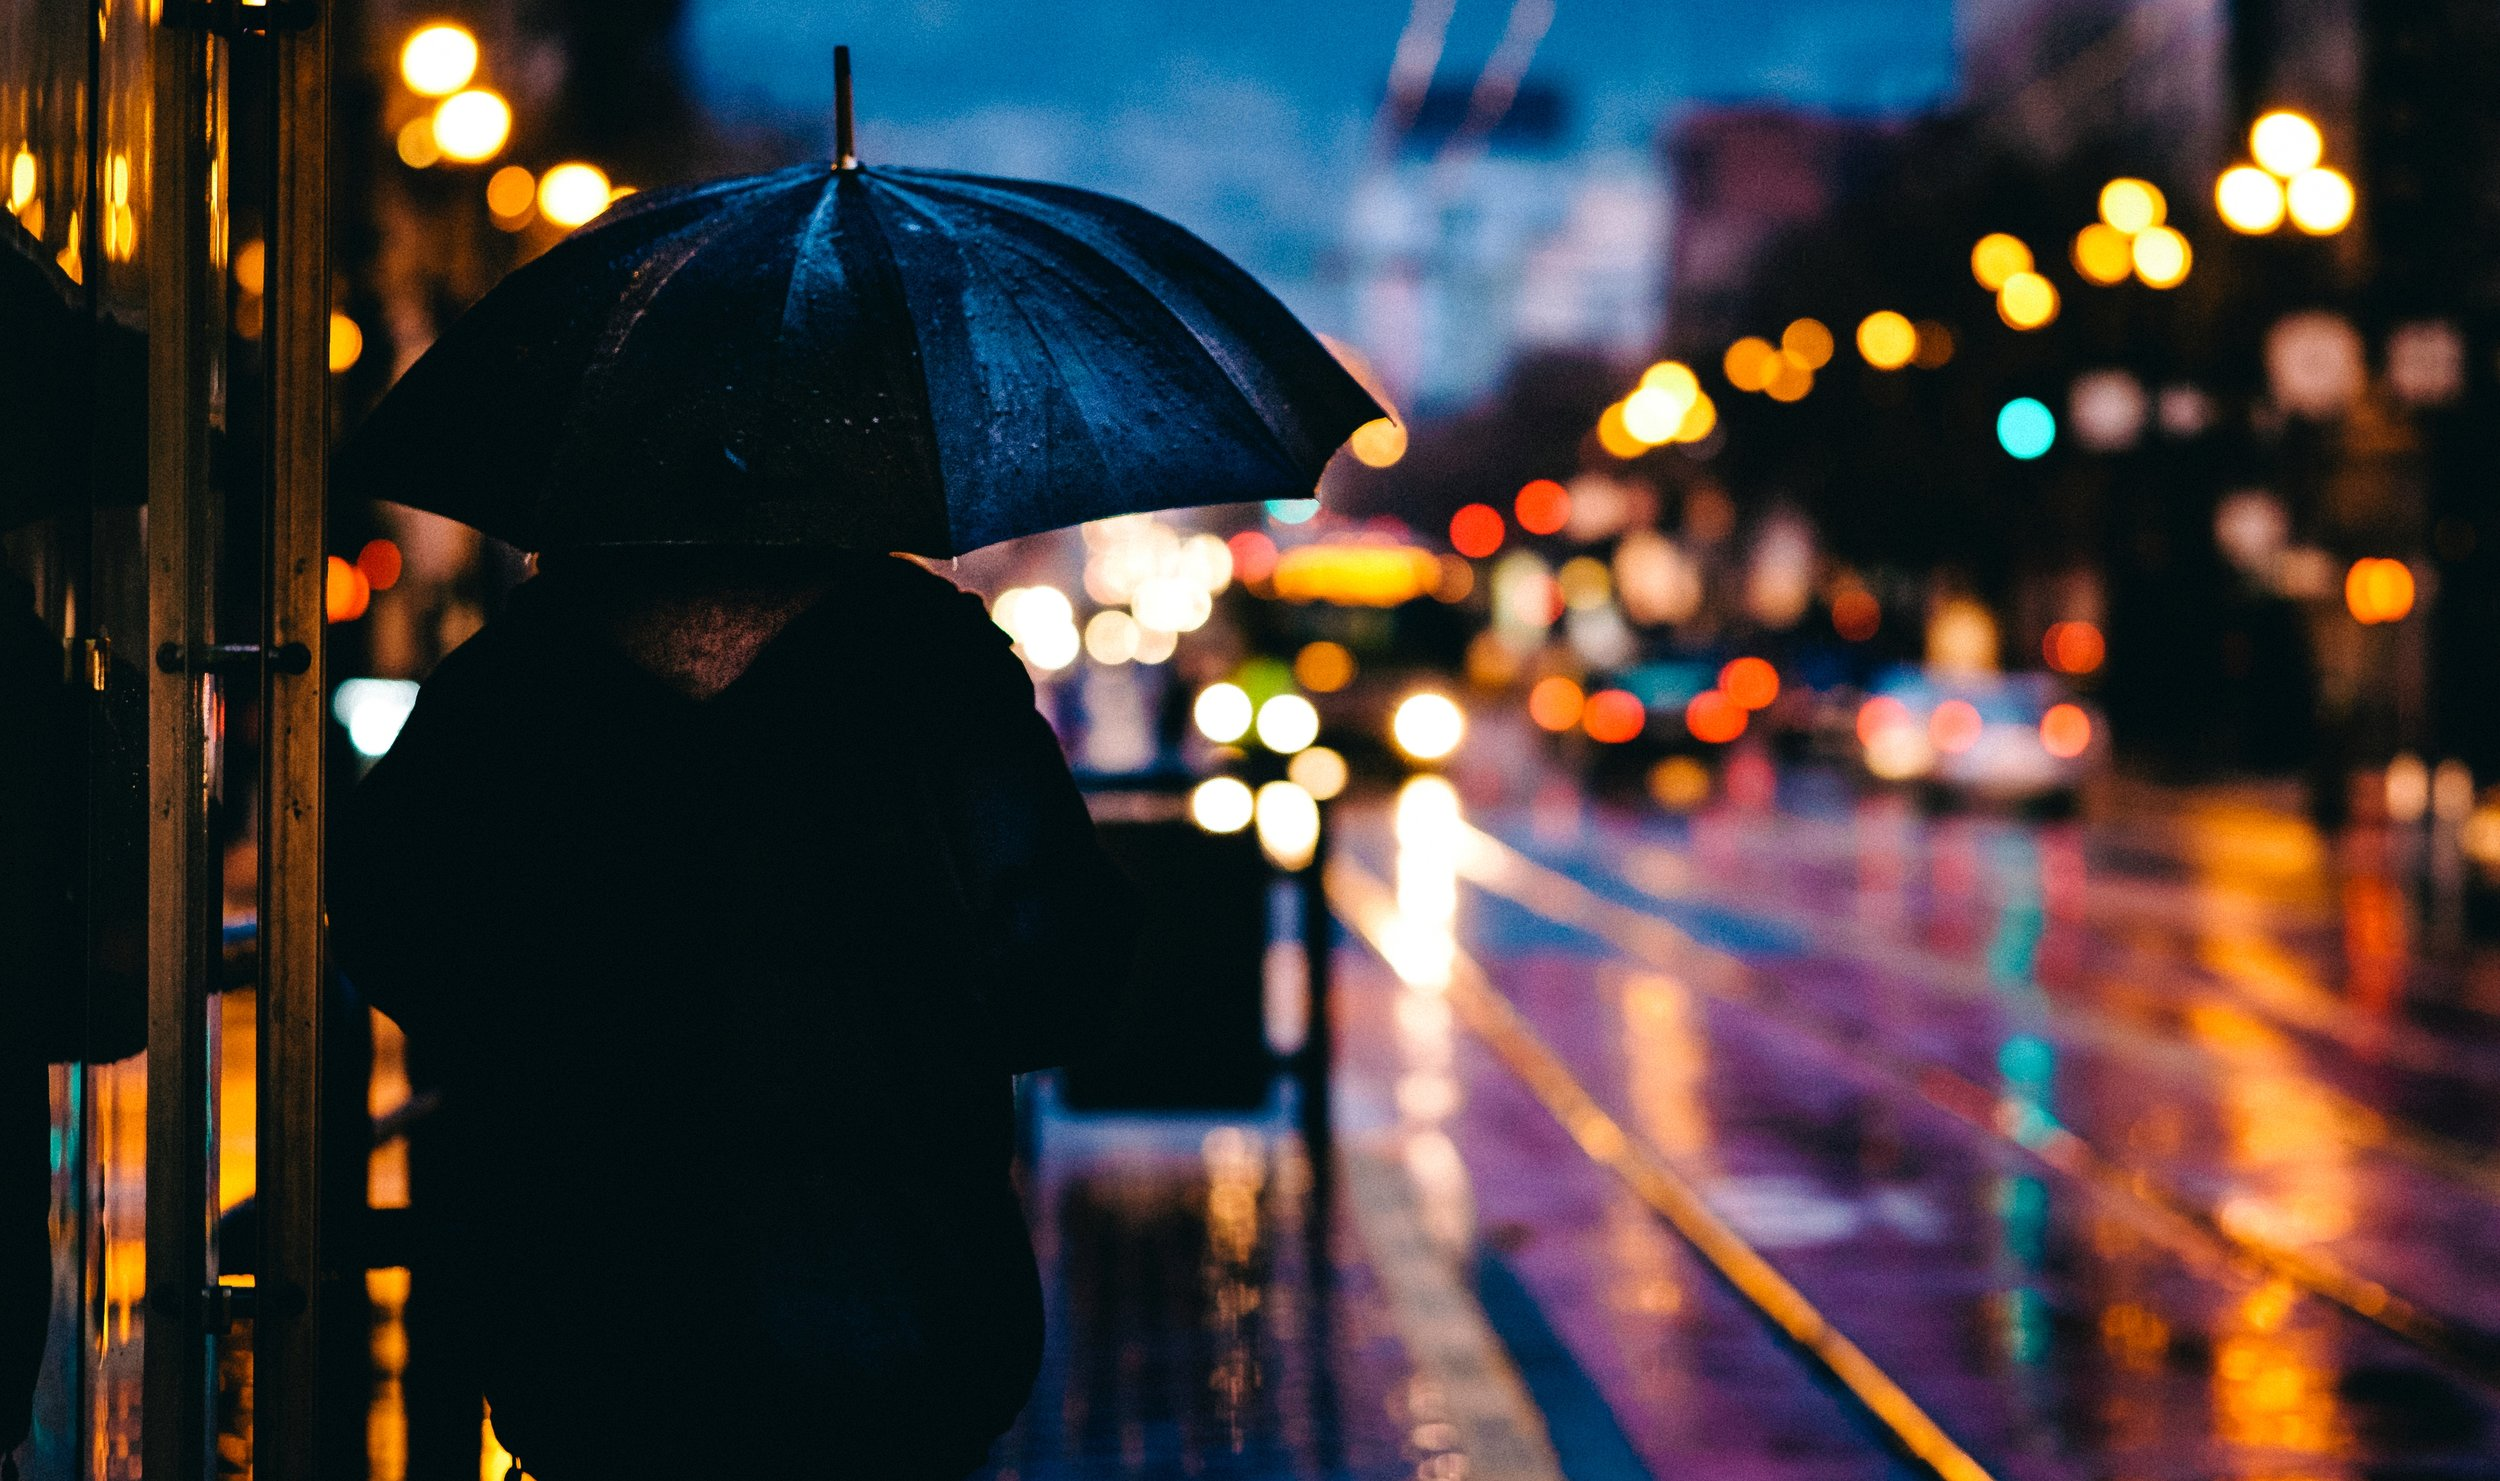 Are You an Umbrella Terrorist? - You might be. But I'm here to help.